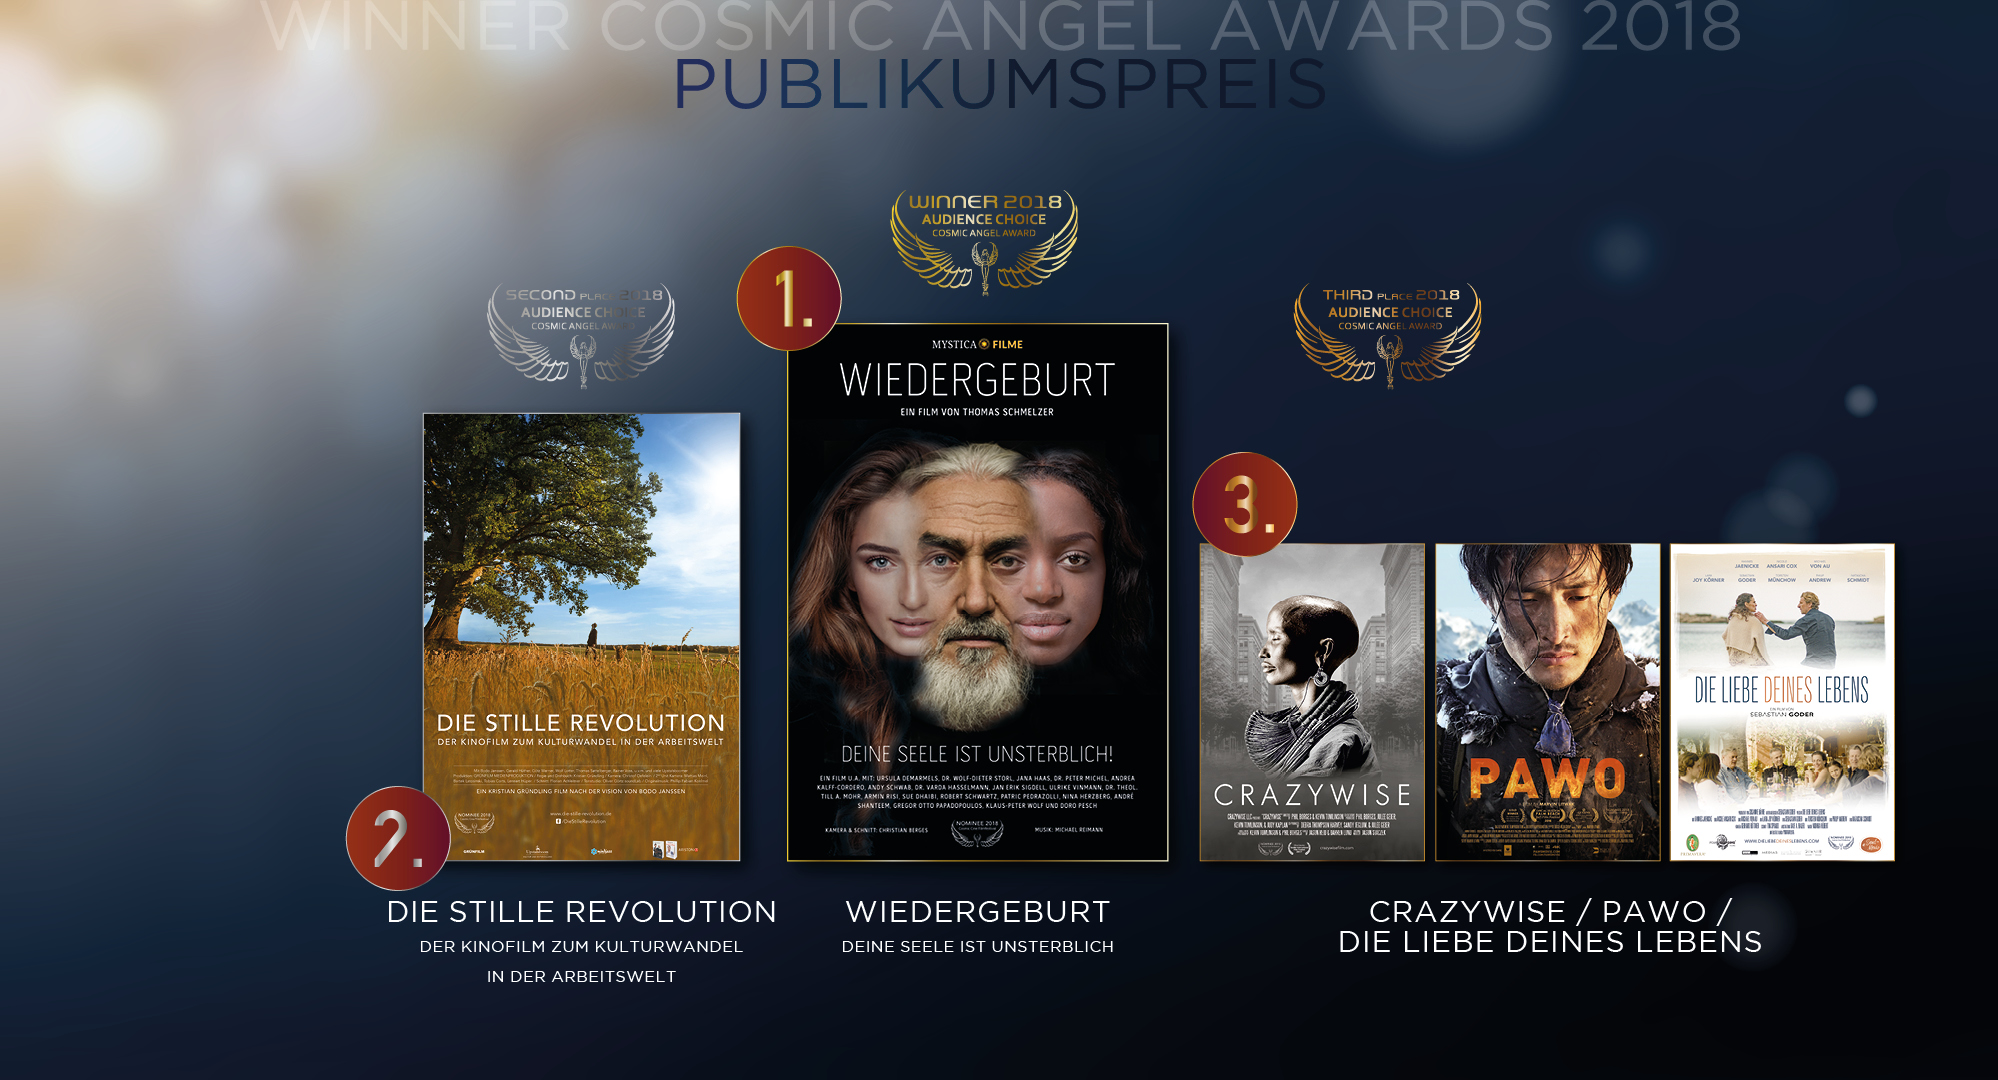 Cosmic Cine - Winner Cosmic Angel Audience Choice Award - Publikumspreis